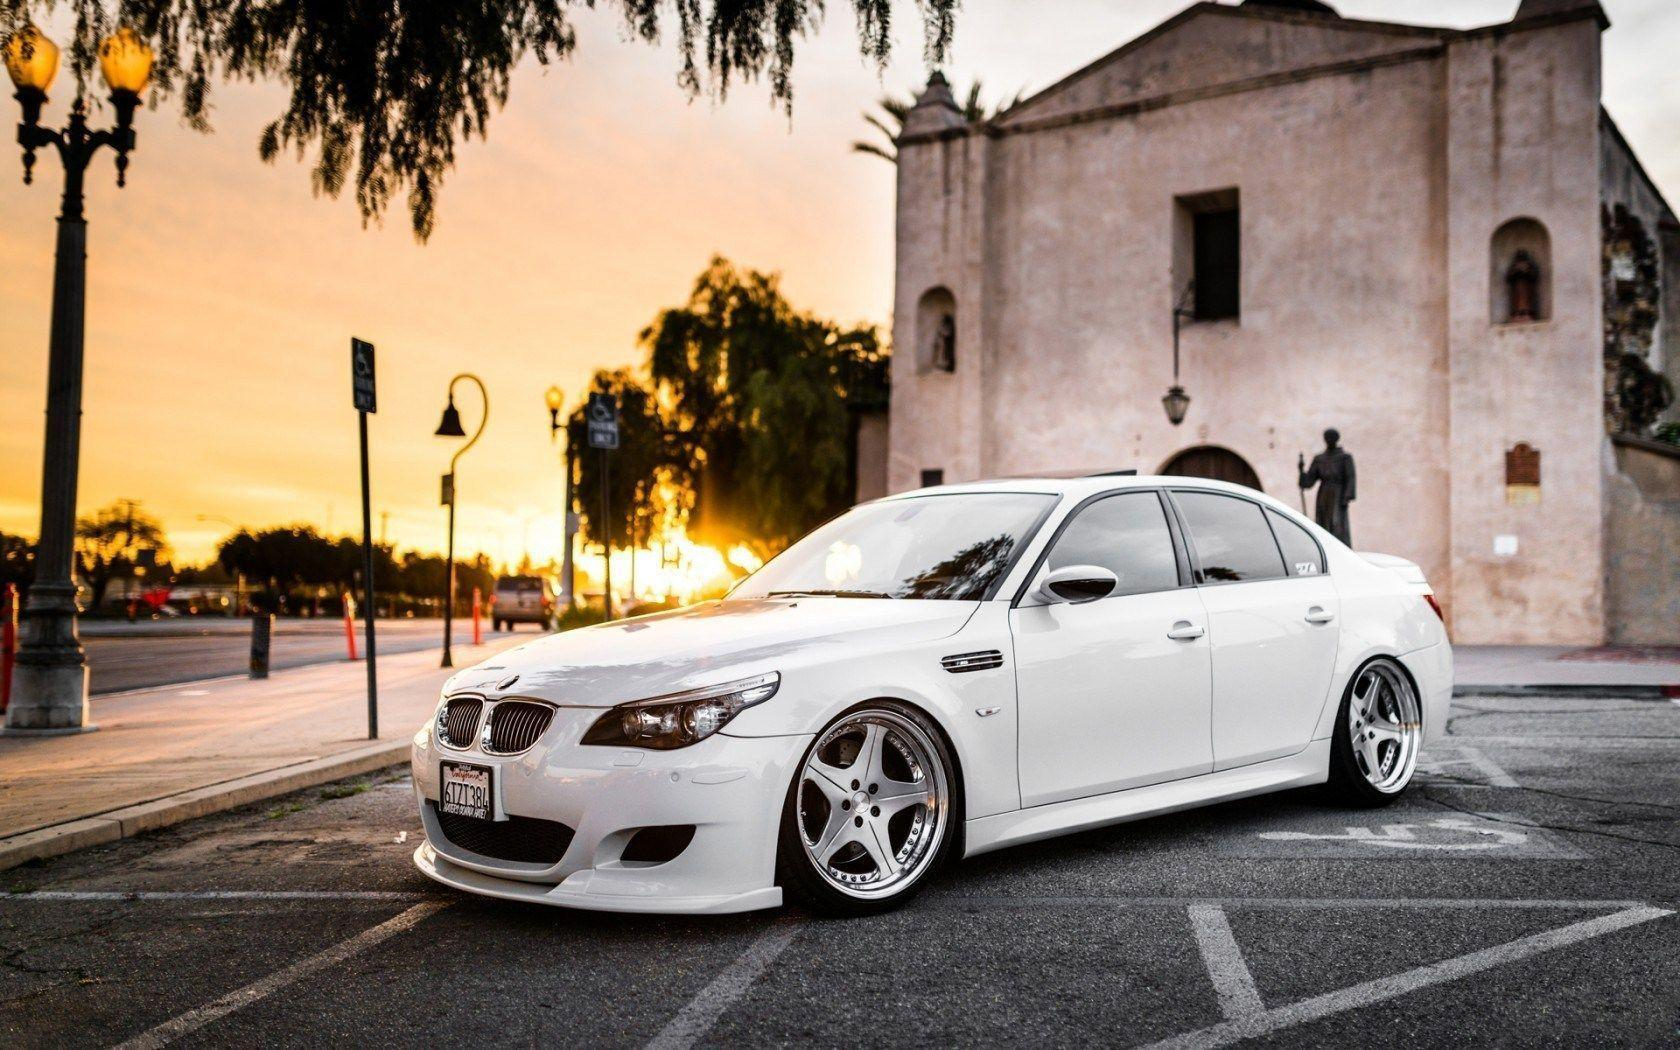 Bmw M5 Wallpapers Bmw E60 M5 White 1680x1050 Wallpaper Teahub Io